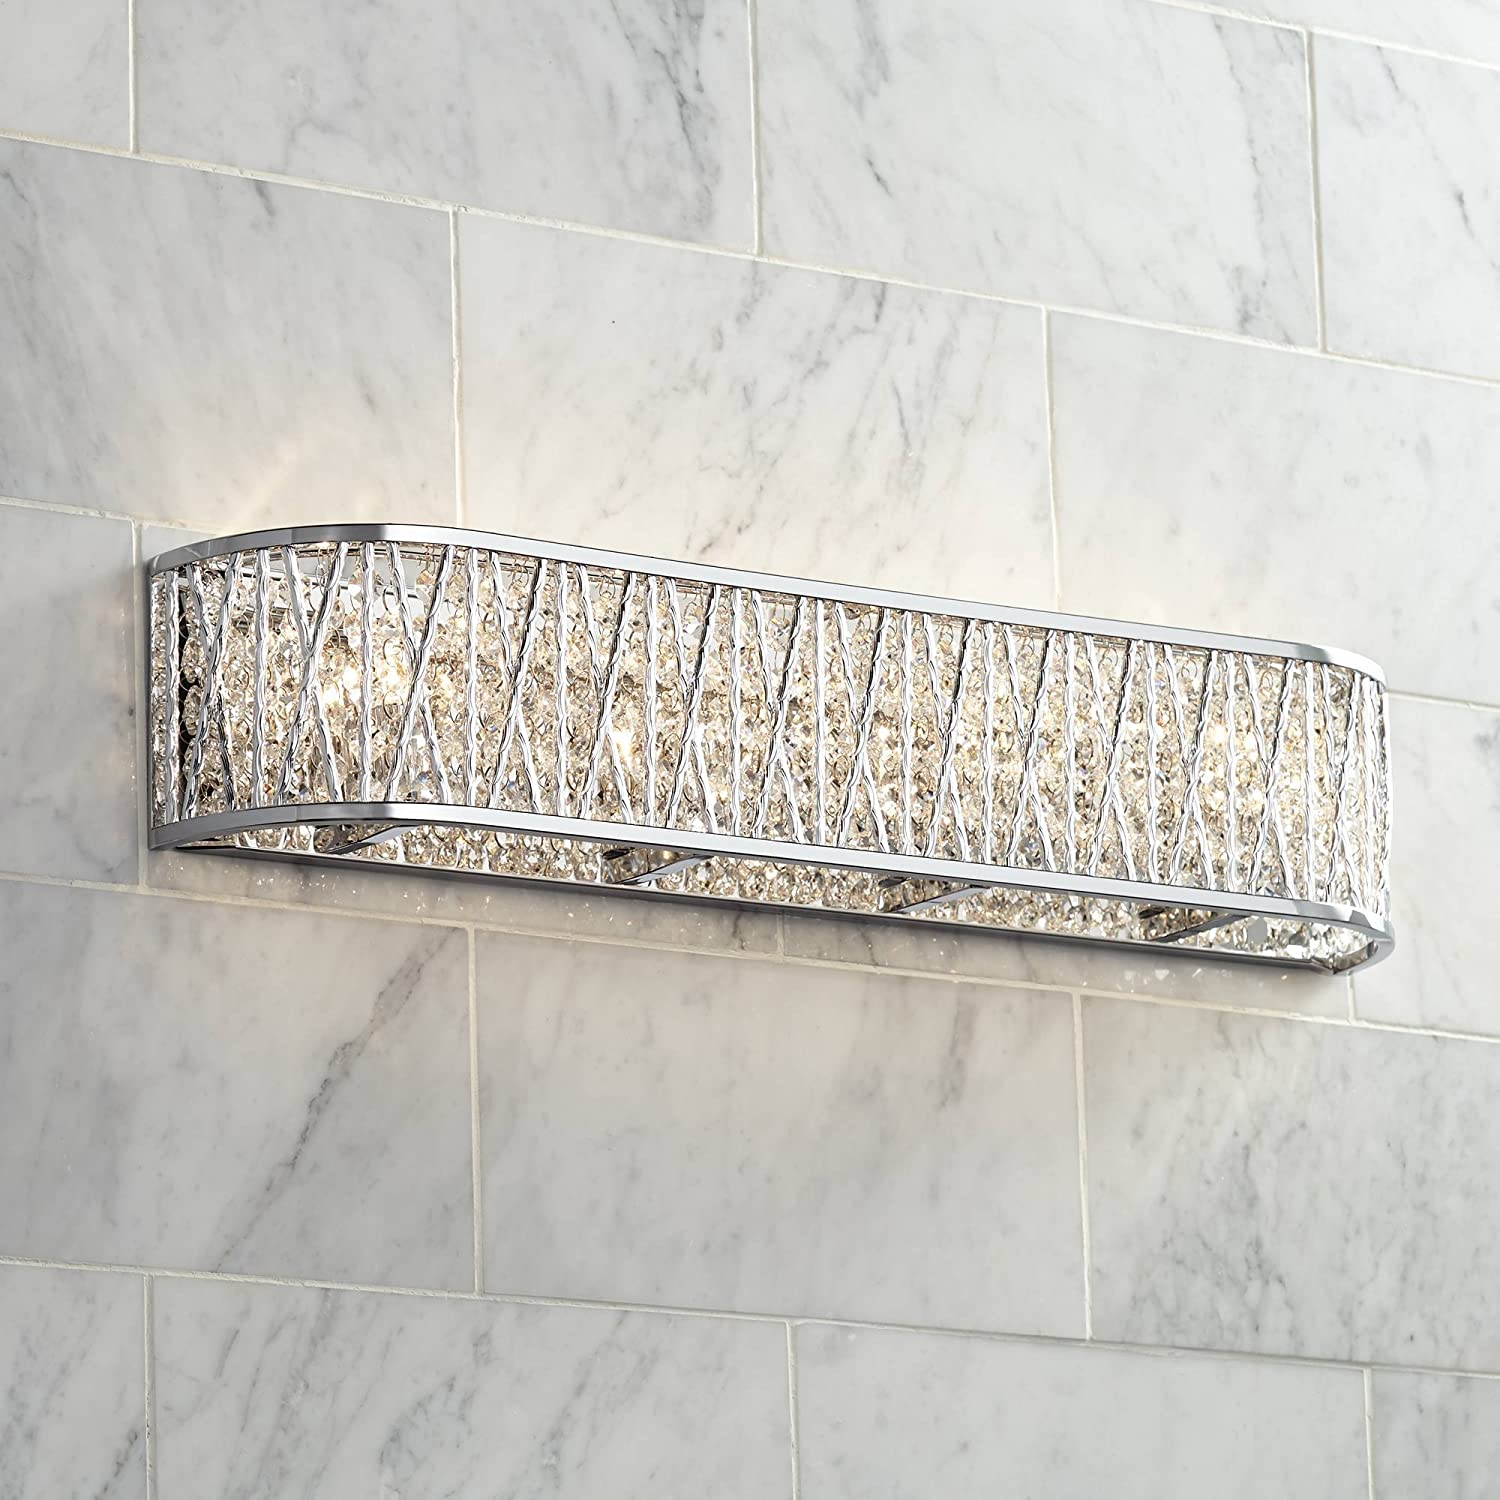 Woven Laser Cut Modern Wall Light Chrome Hardwired 24 Wide Light Bar Fixture Crystal Accents for Bathroom Vanity – Possini Euro Design